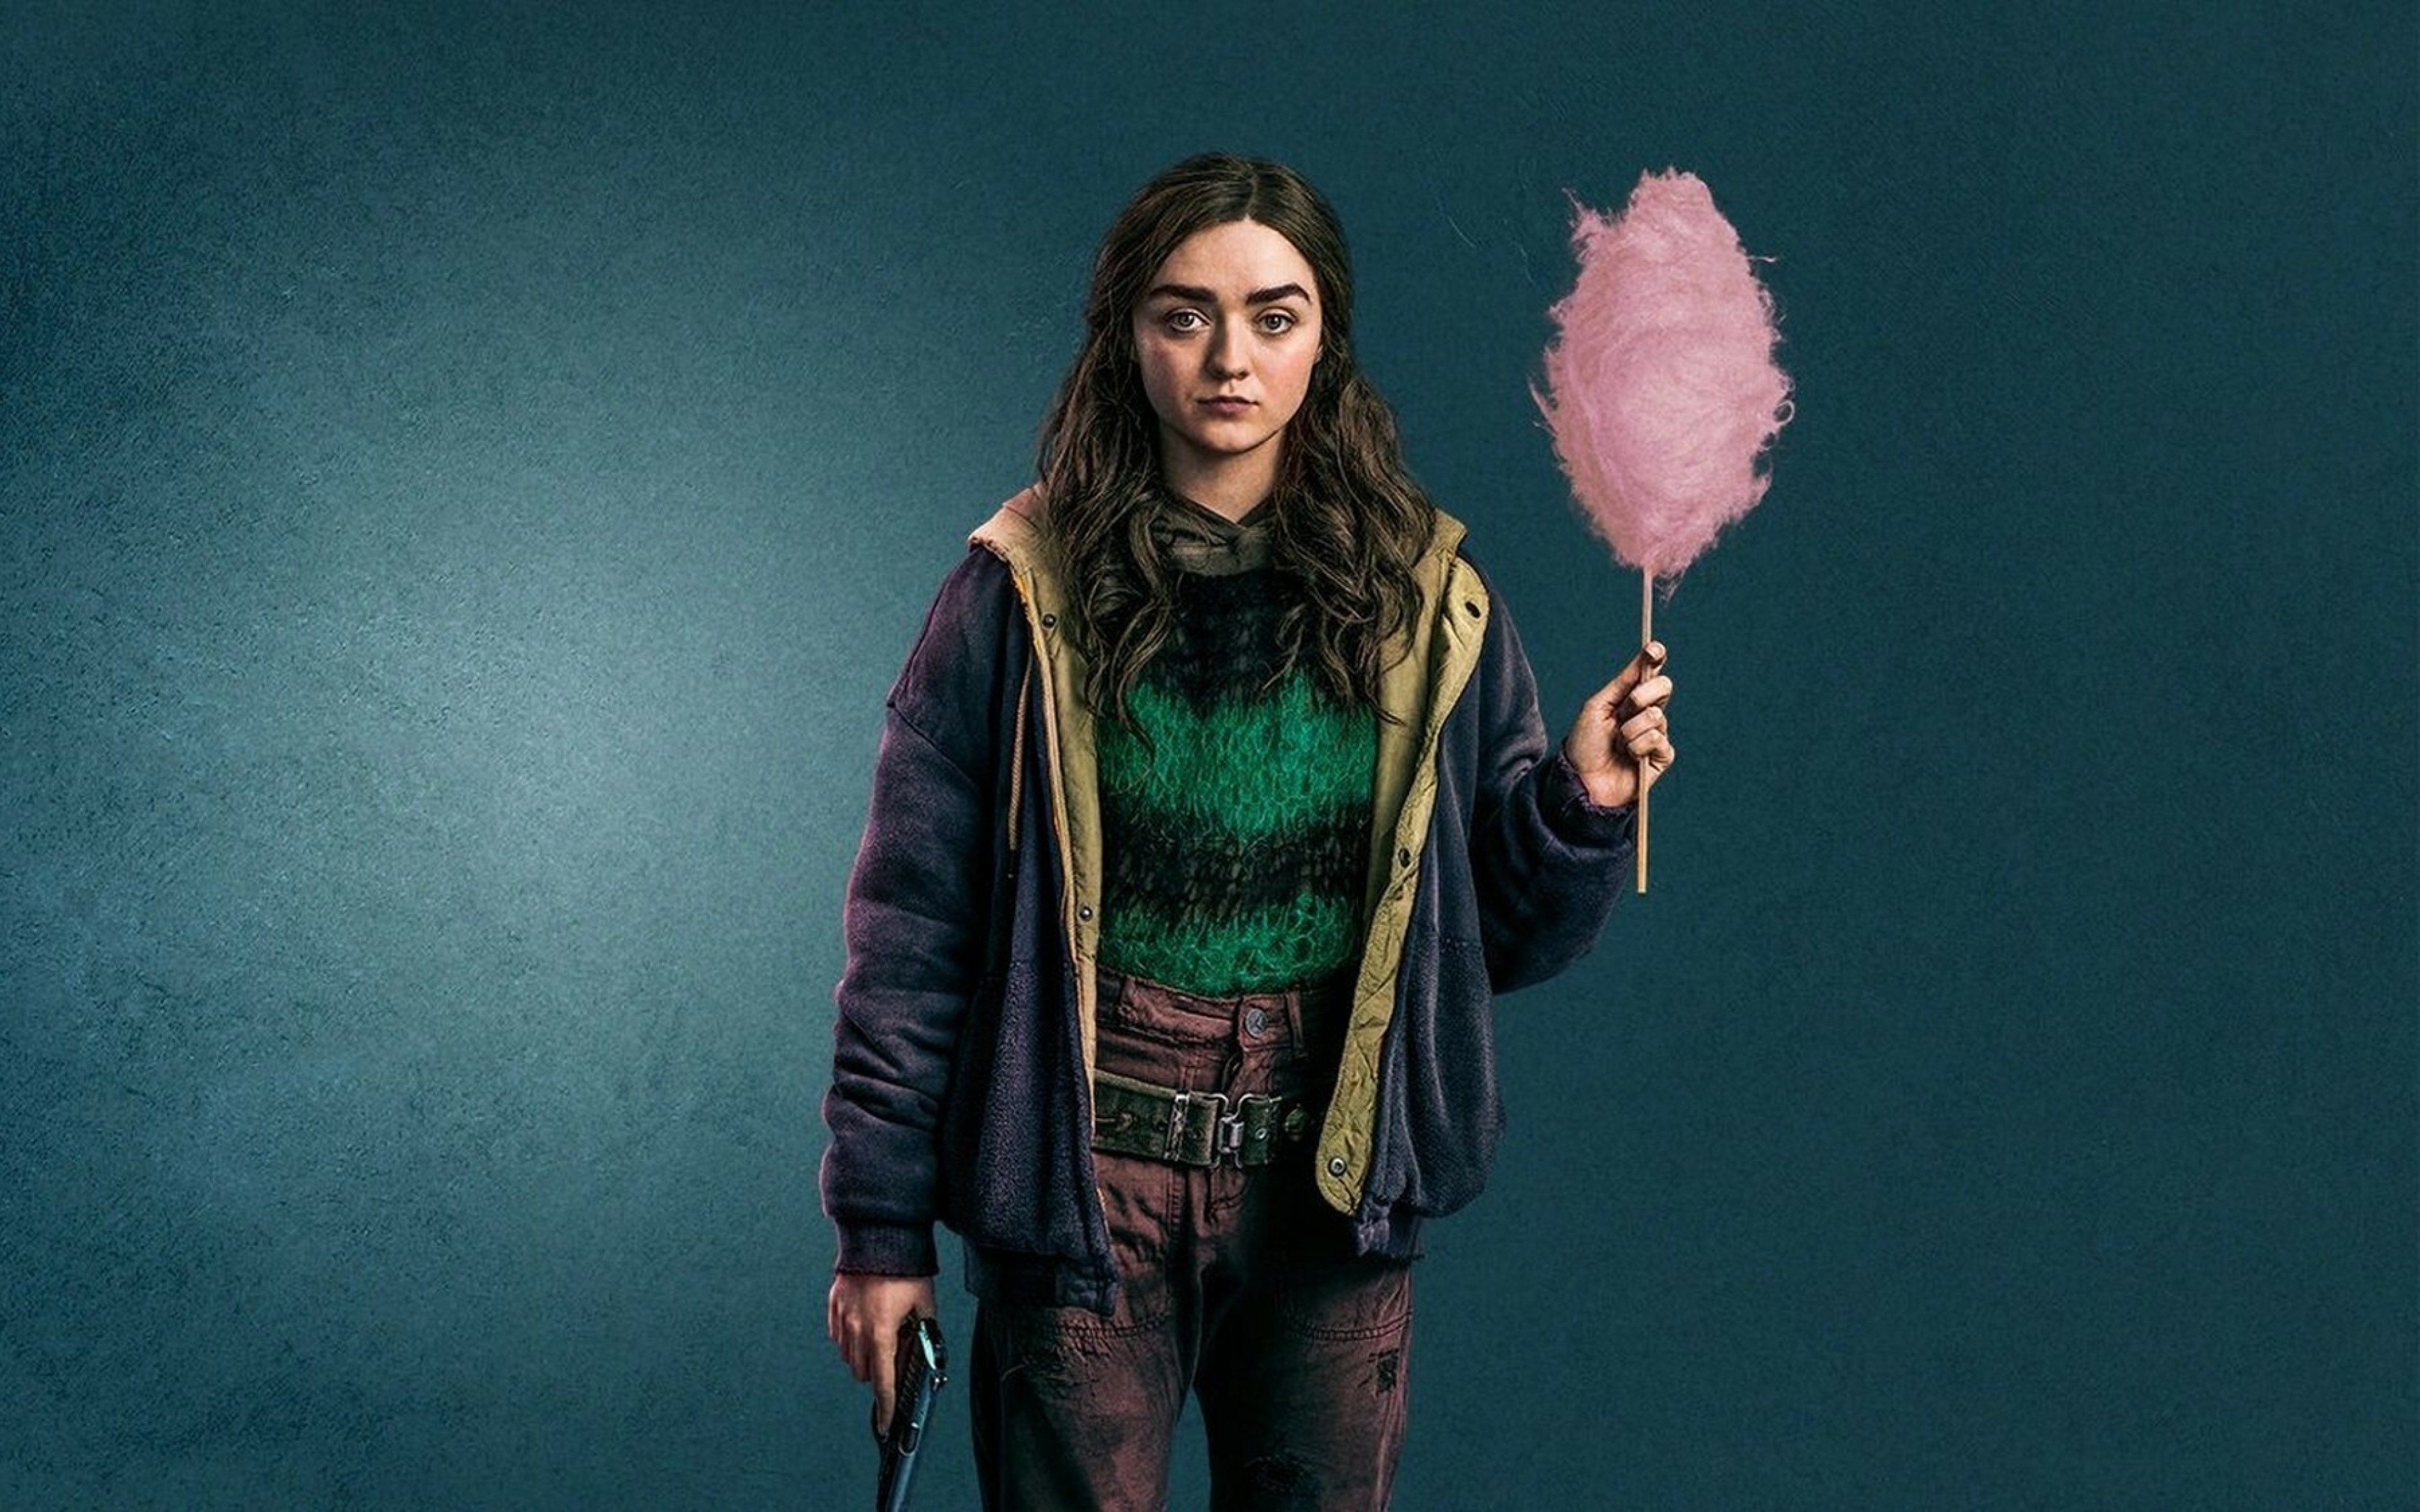 Maisie Williams Two Weeks To Live Wallpaper in 3840x2400 Resolution